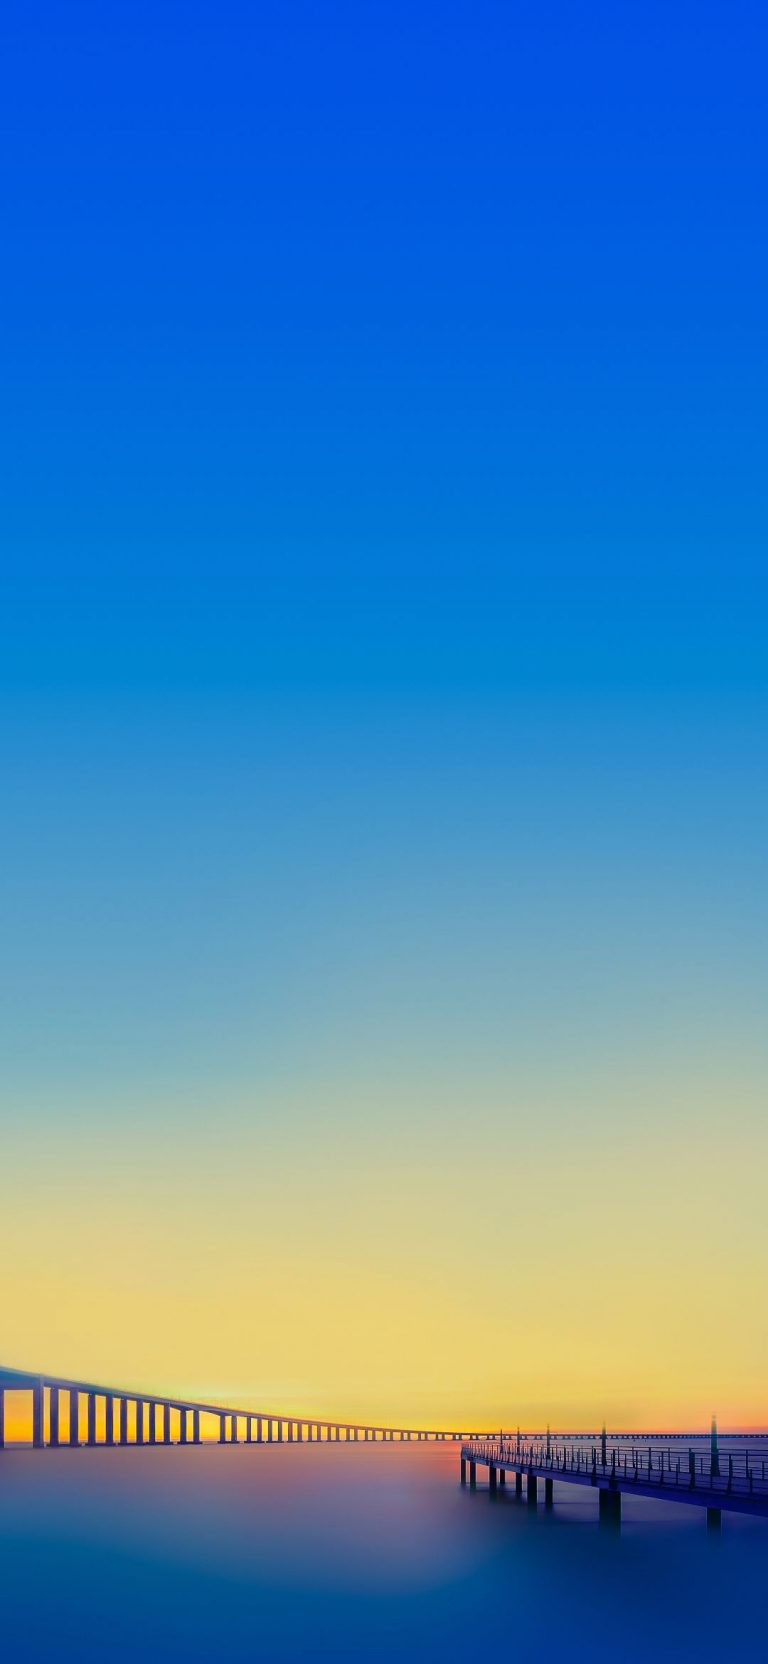 Vivo U20 Stock Wallpaper [1080x2340] - 03